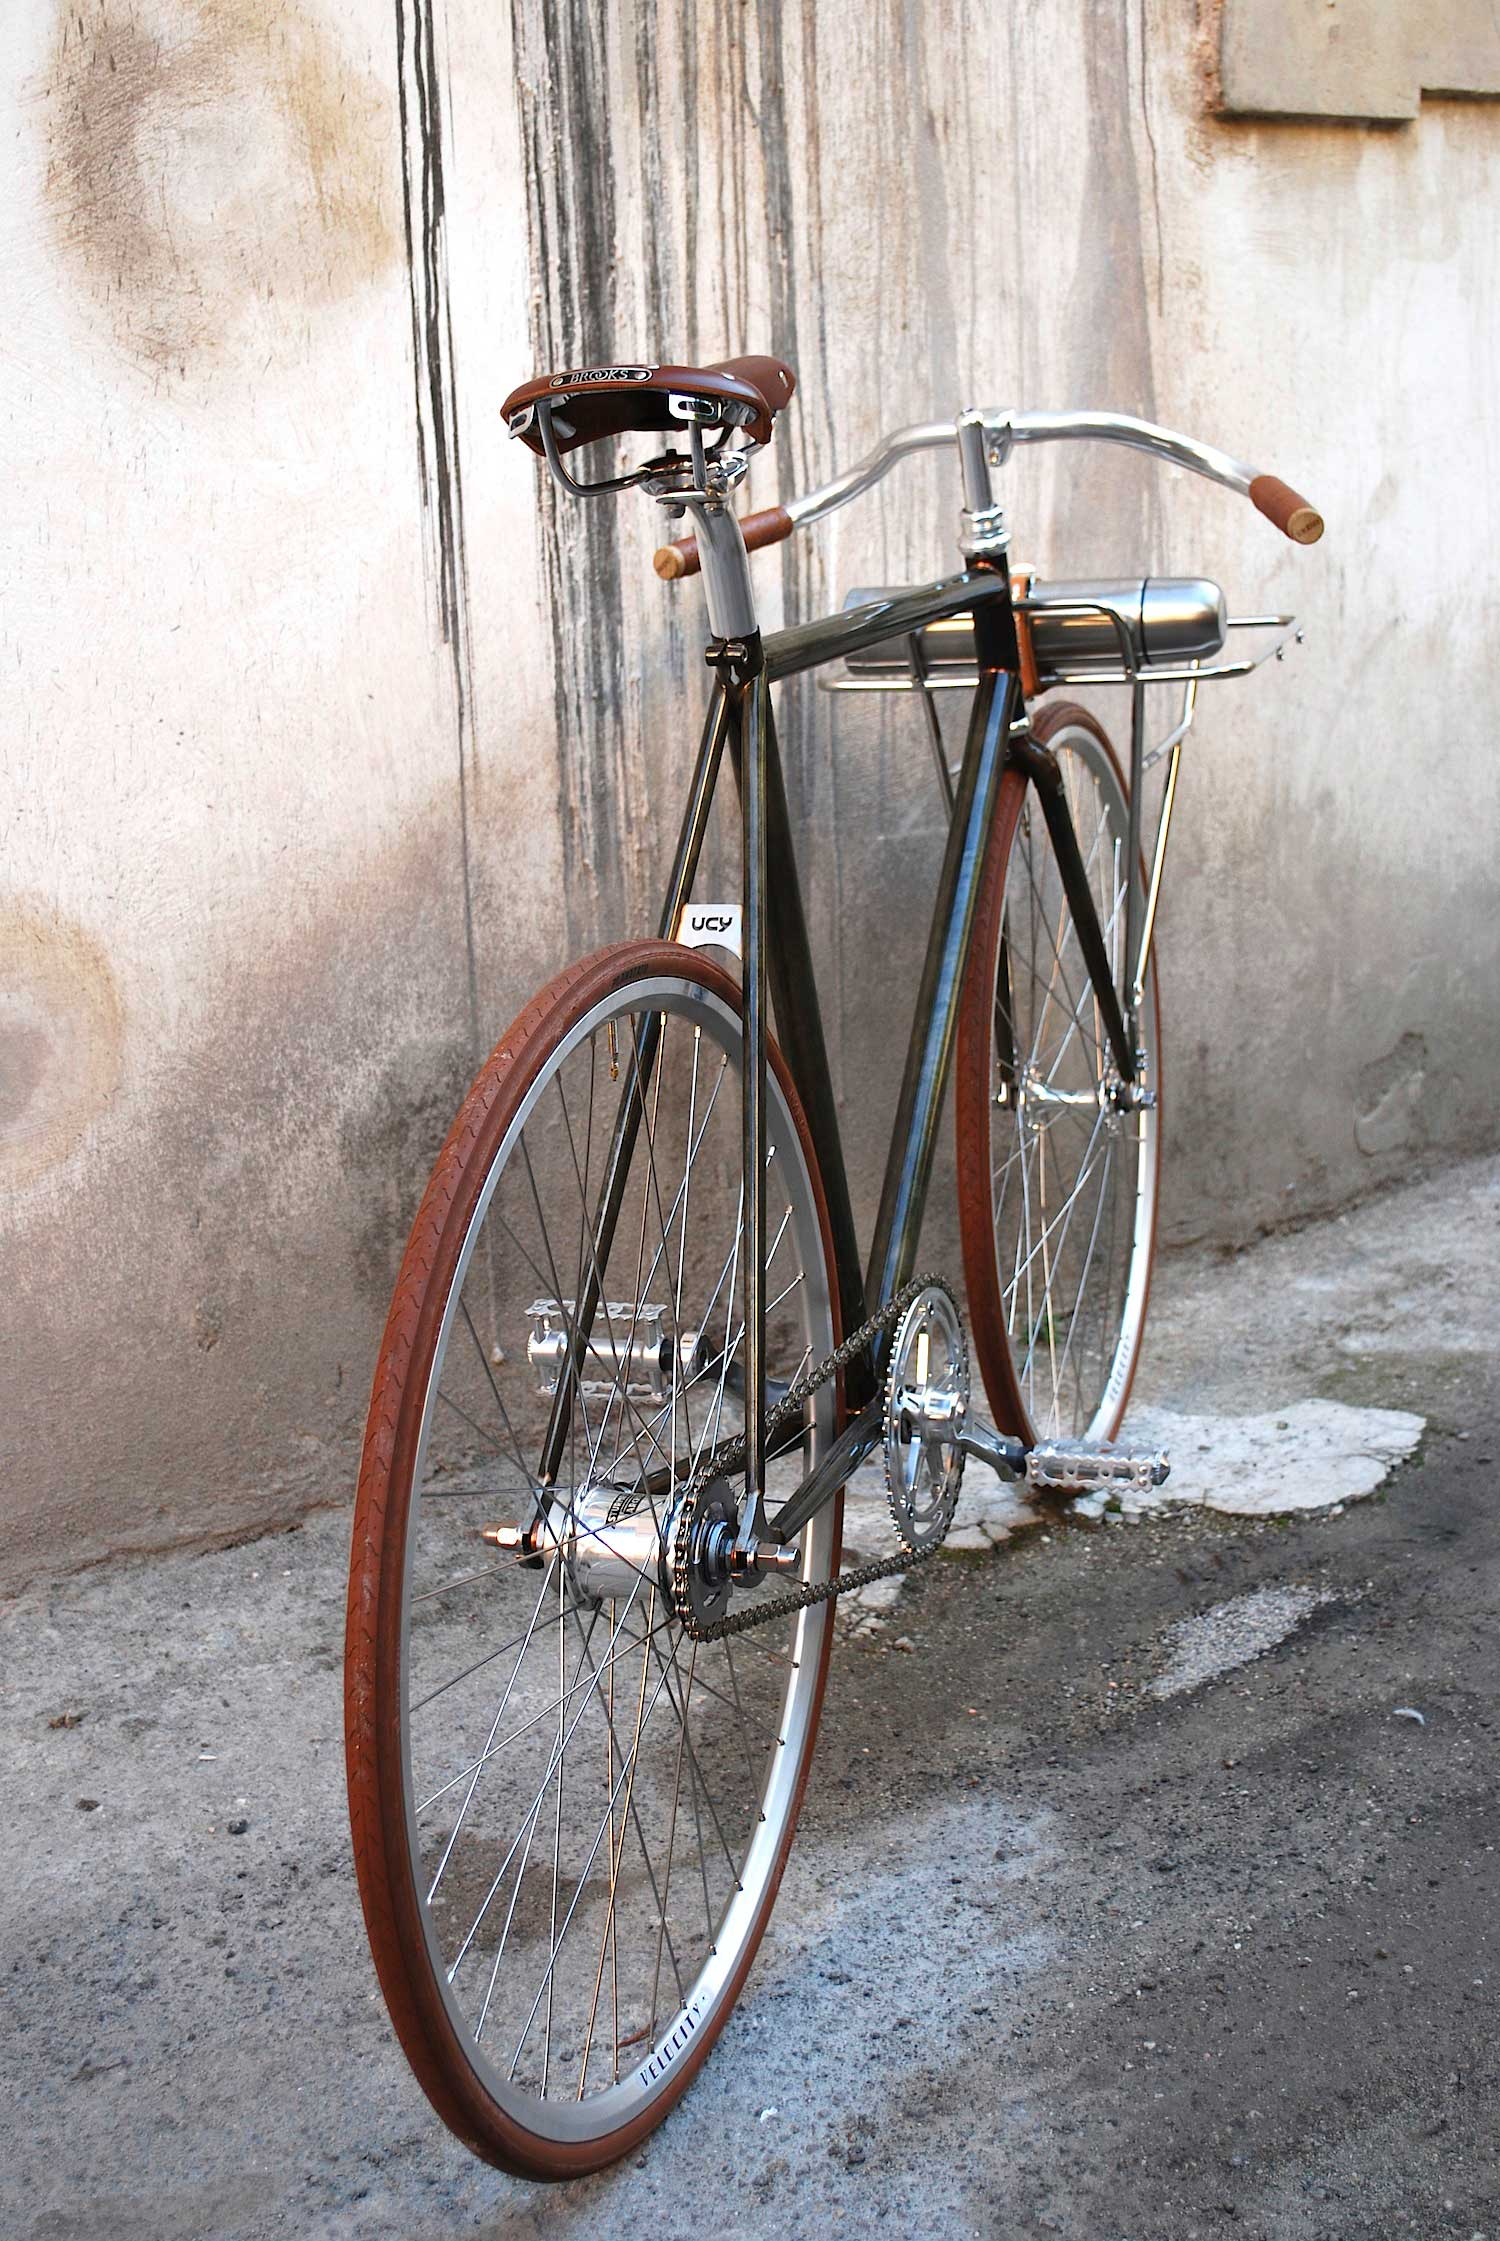 11F1 Porteur Duomatic by UCY